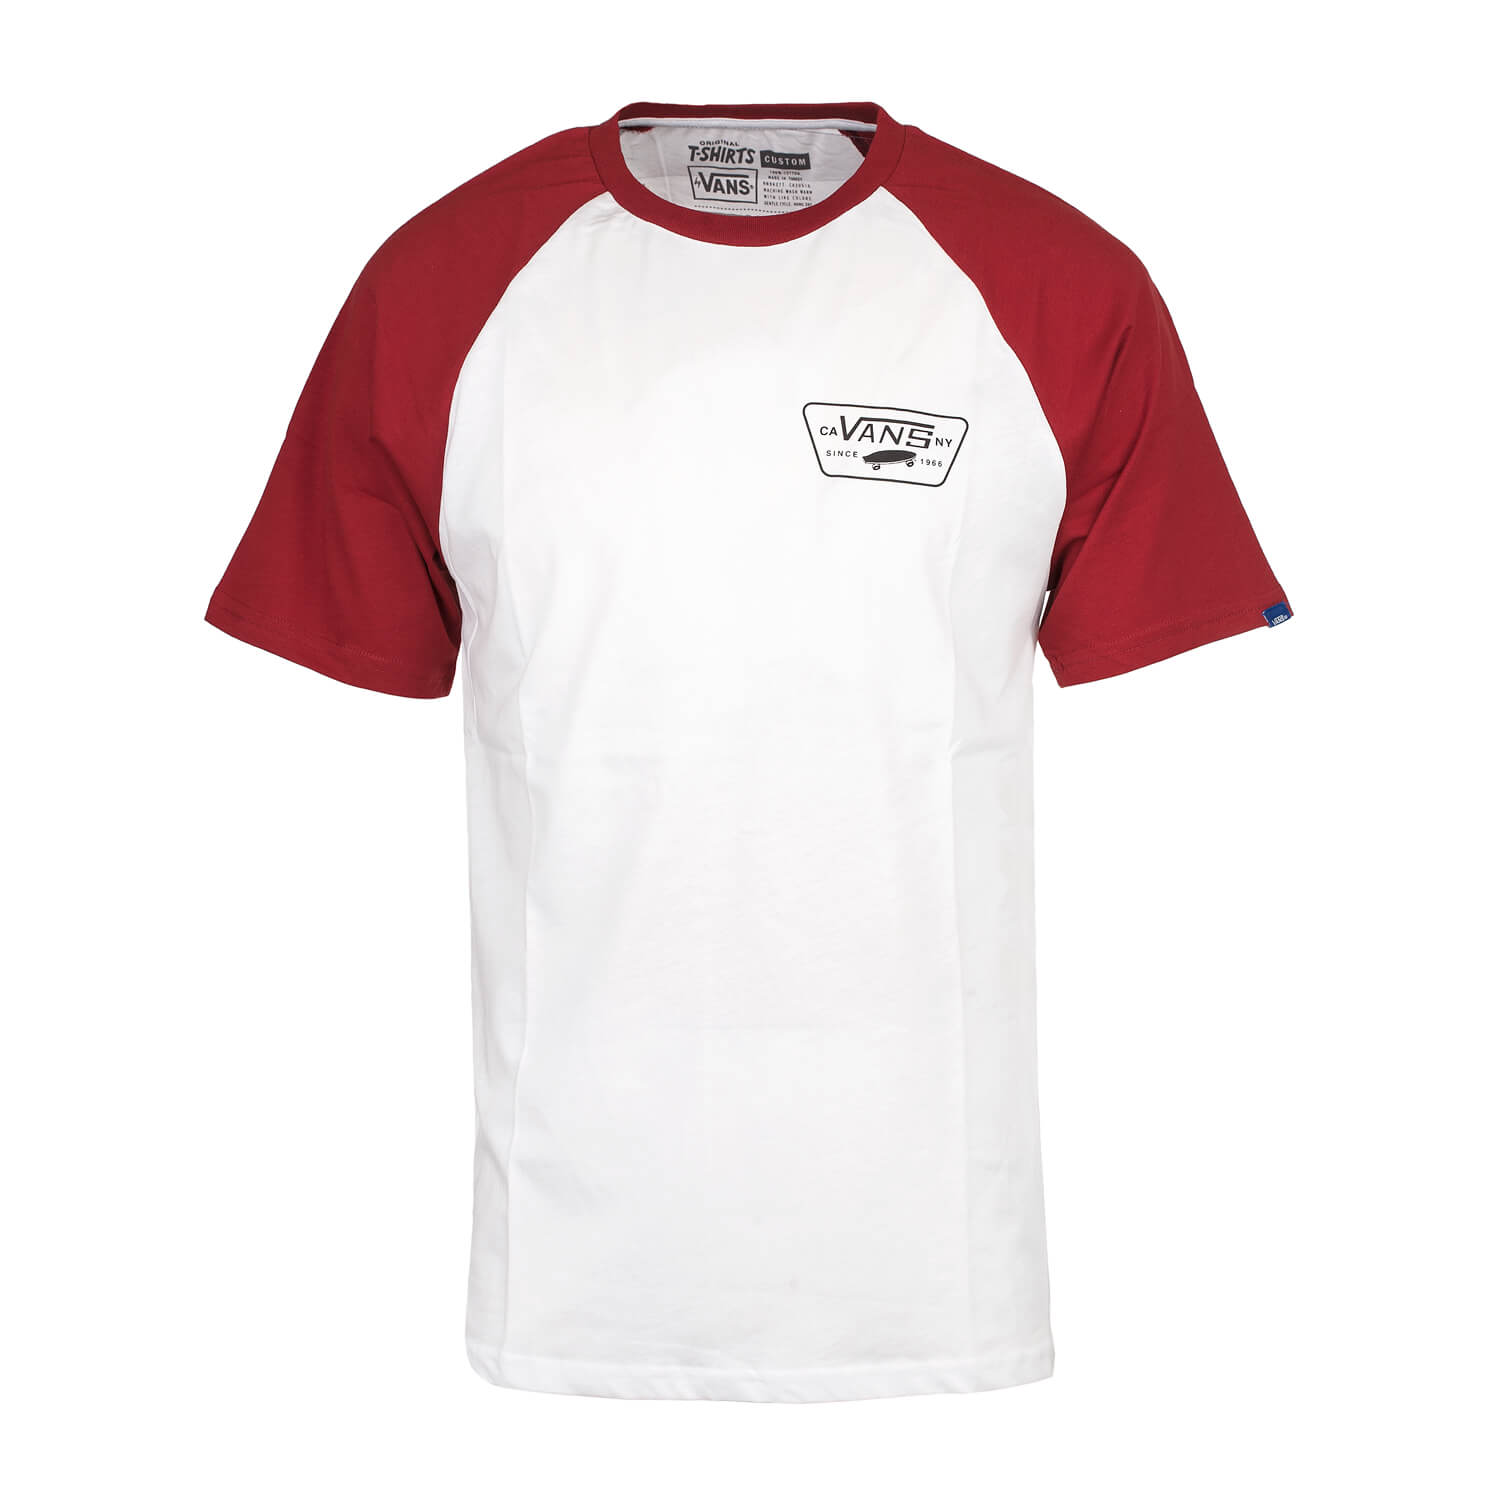 dc661a210faa Vans Full Patch Raglan T-Shirt weiß rot - Herren Old School T Shirt  white red   DROP-IN.de